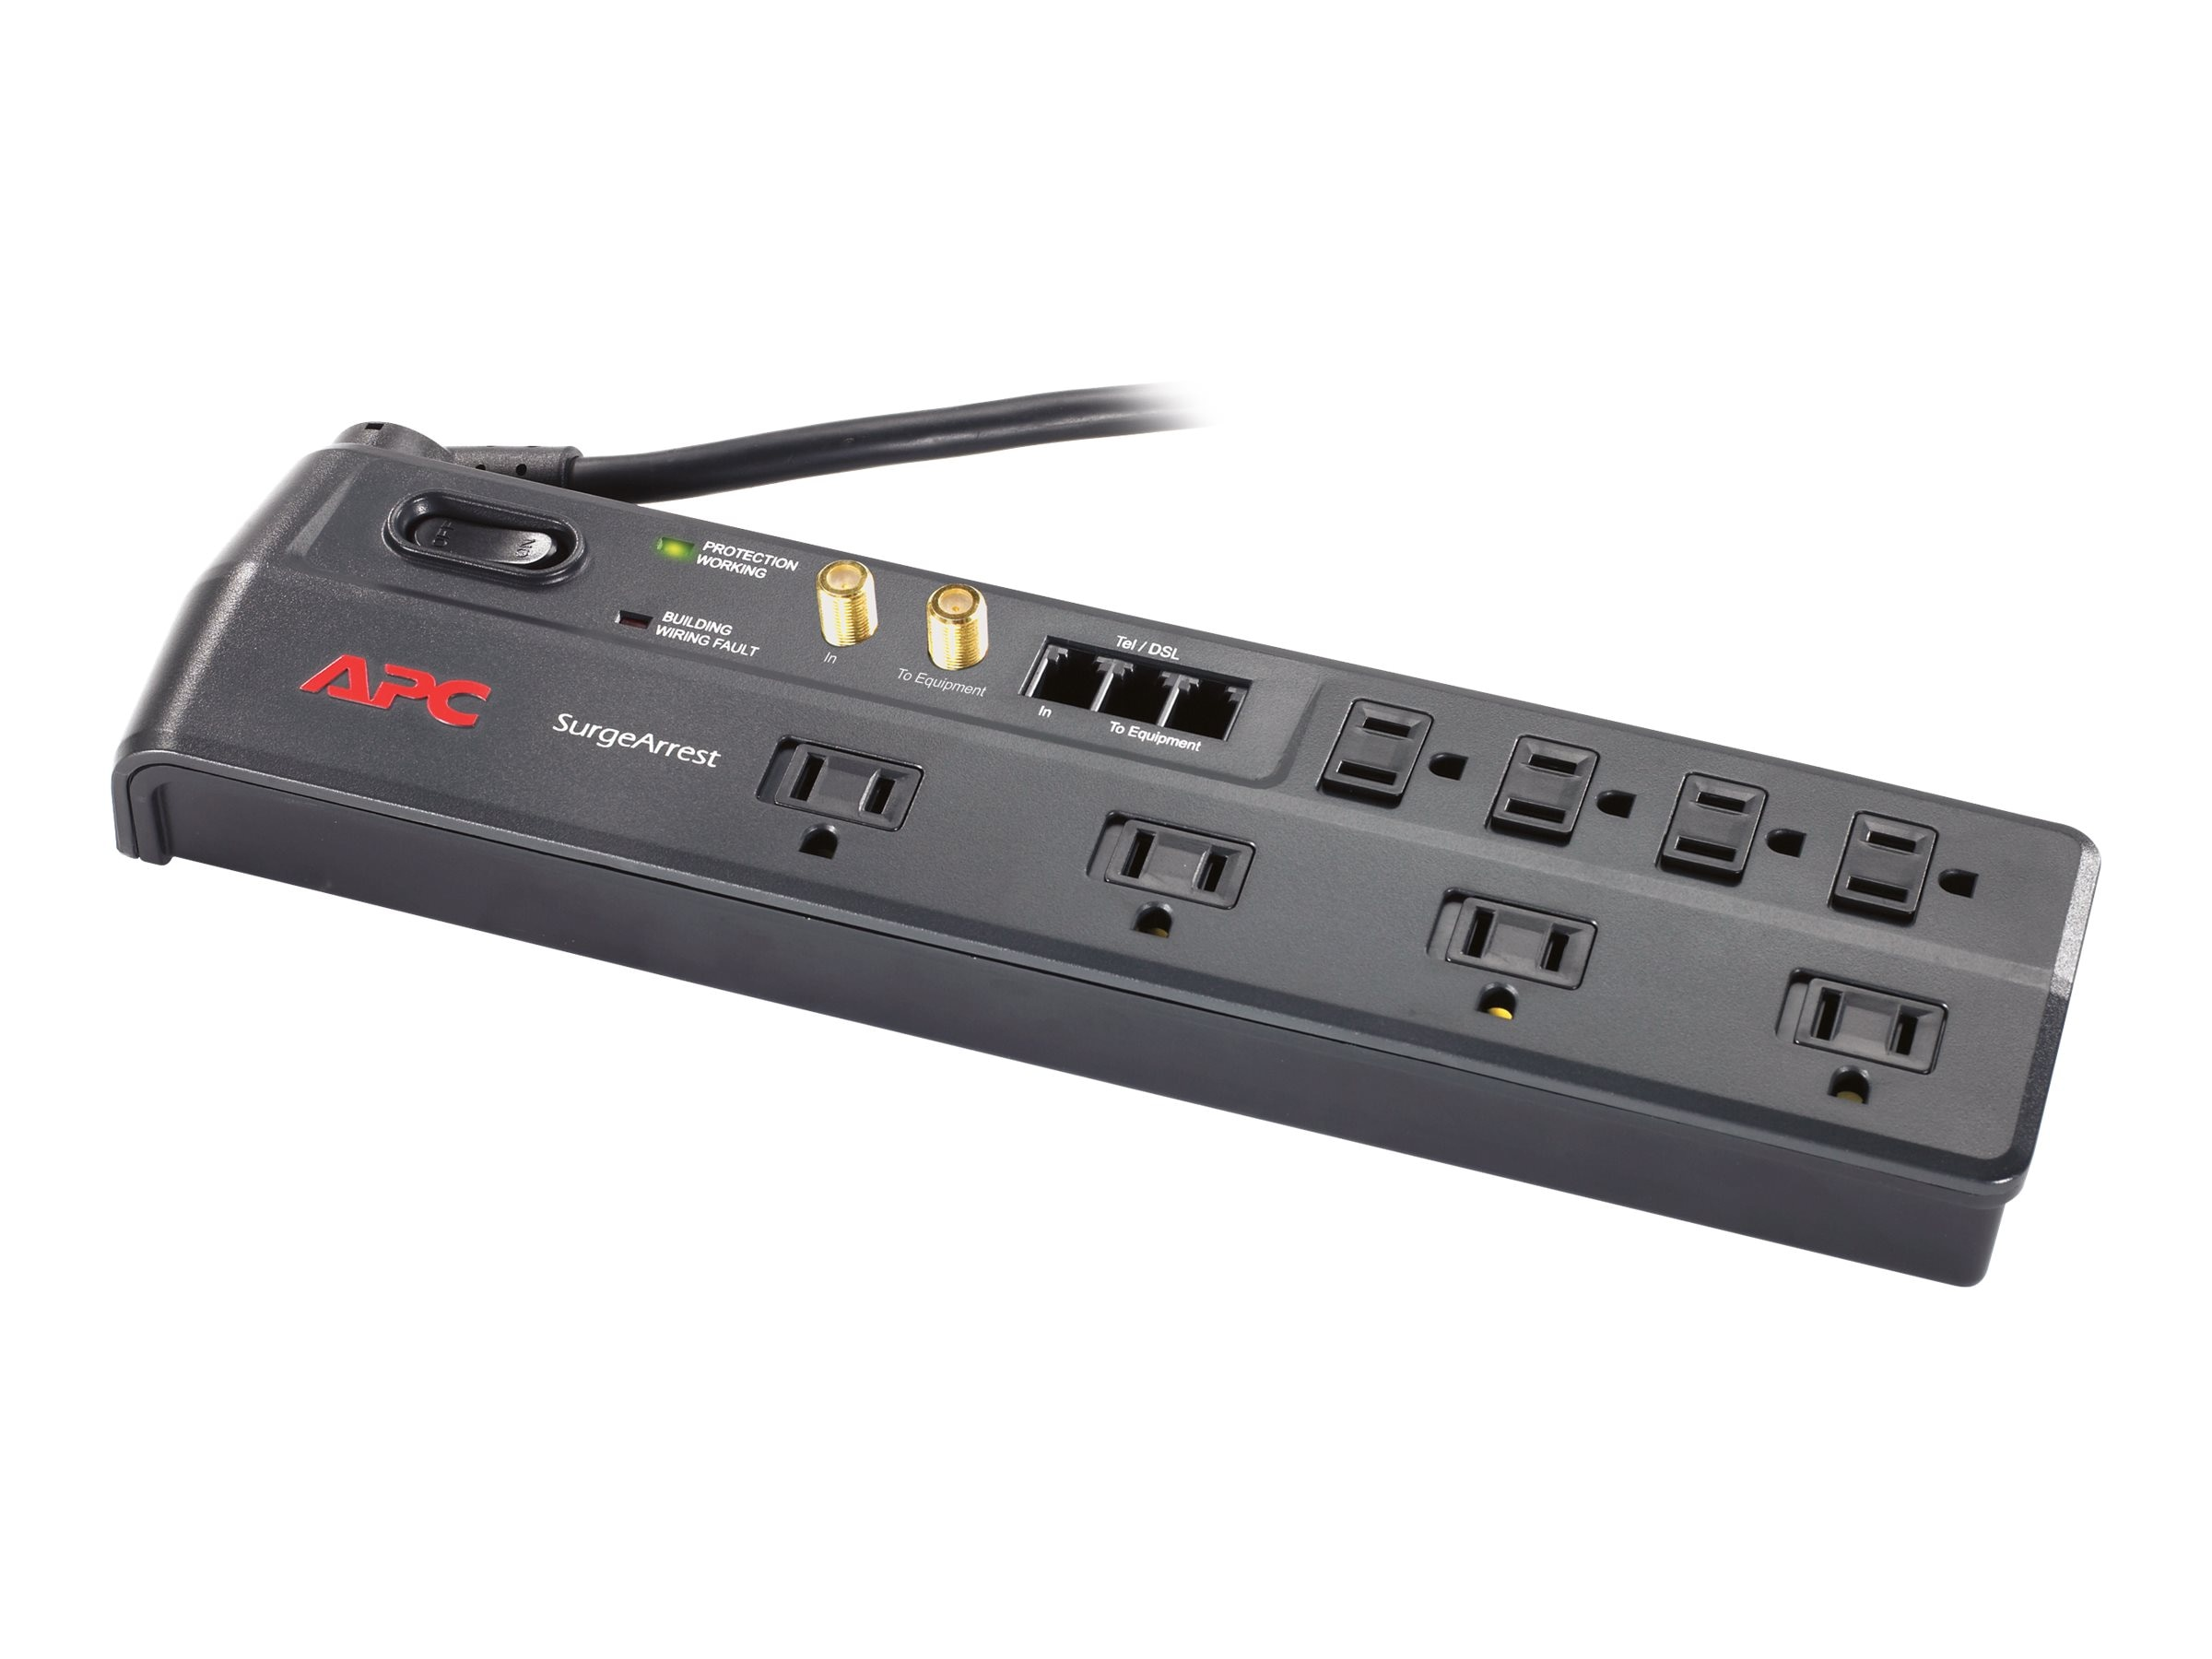 APC Home Office SurgeArrest w Telephone Splitter, Coax Jacks, 8 Outlets, P8VT3, 8341256, Surge Suppressors